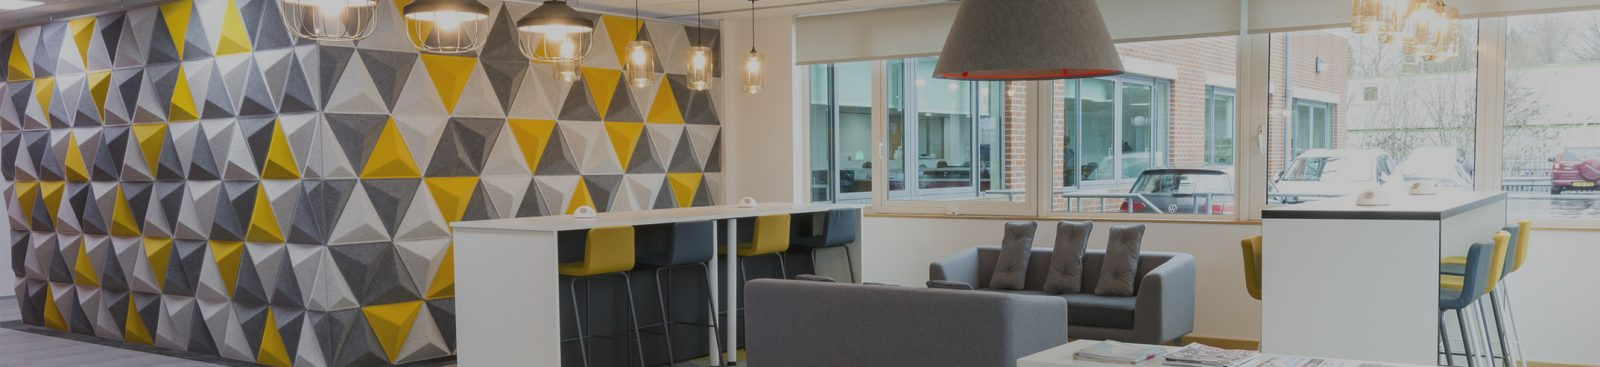 Optimising NCC Group's open plan workspace image